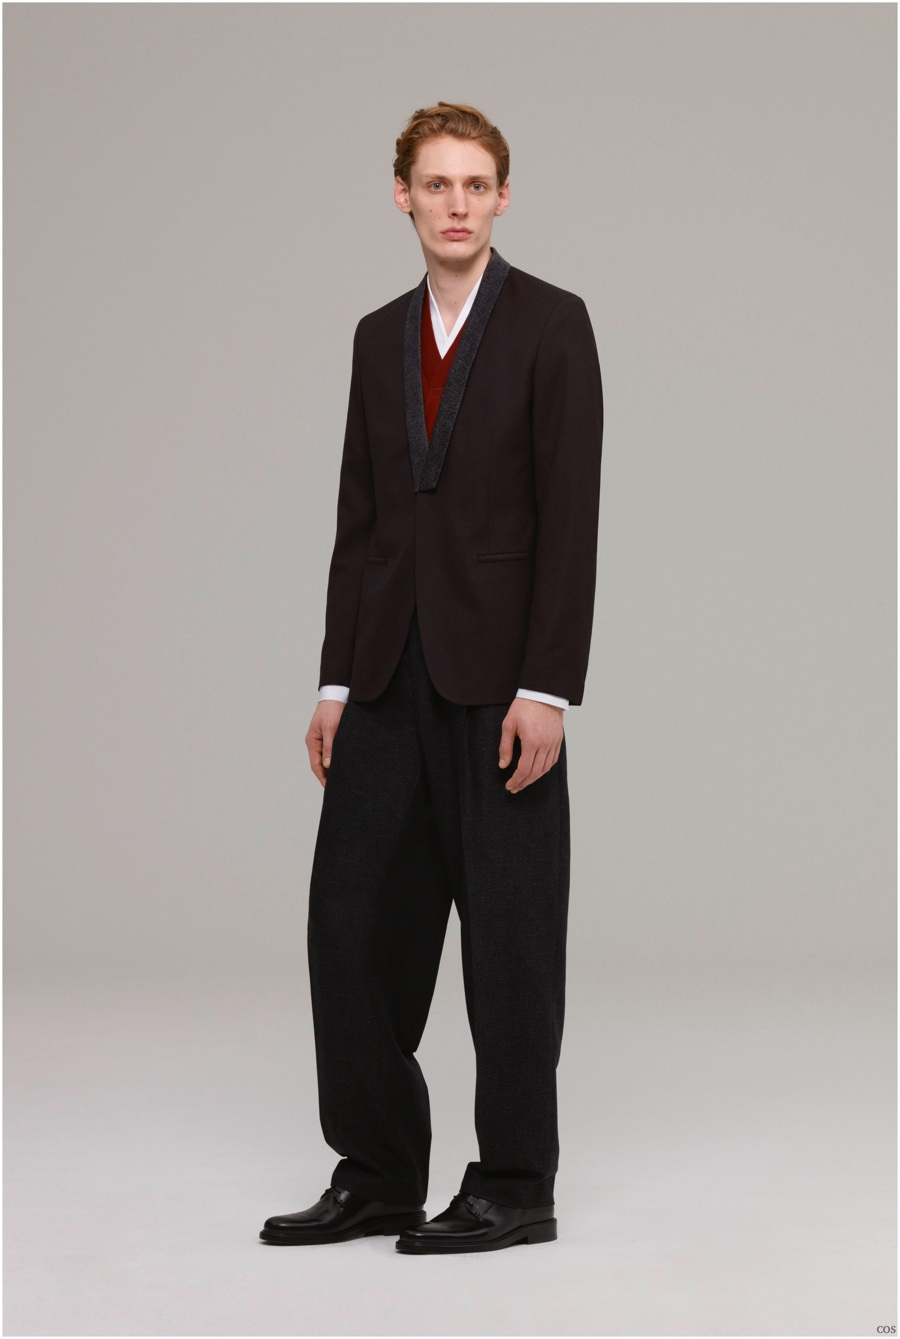 COS Fall/Winter 2015 Menswear Collection